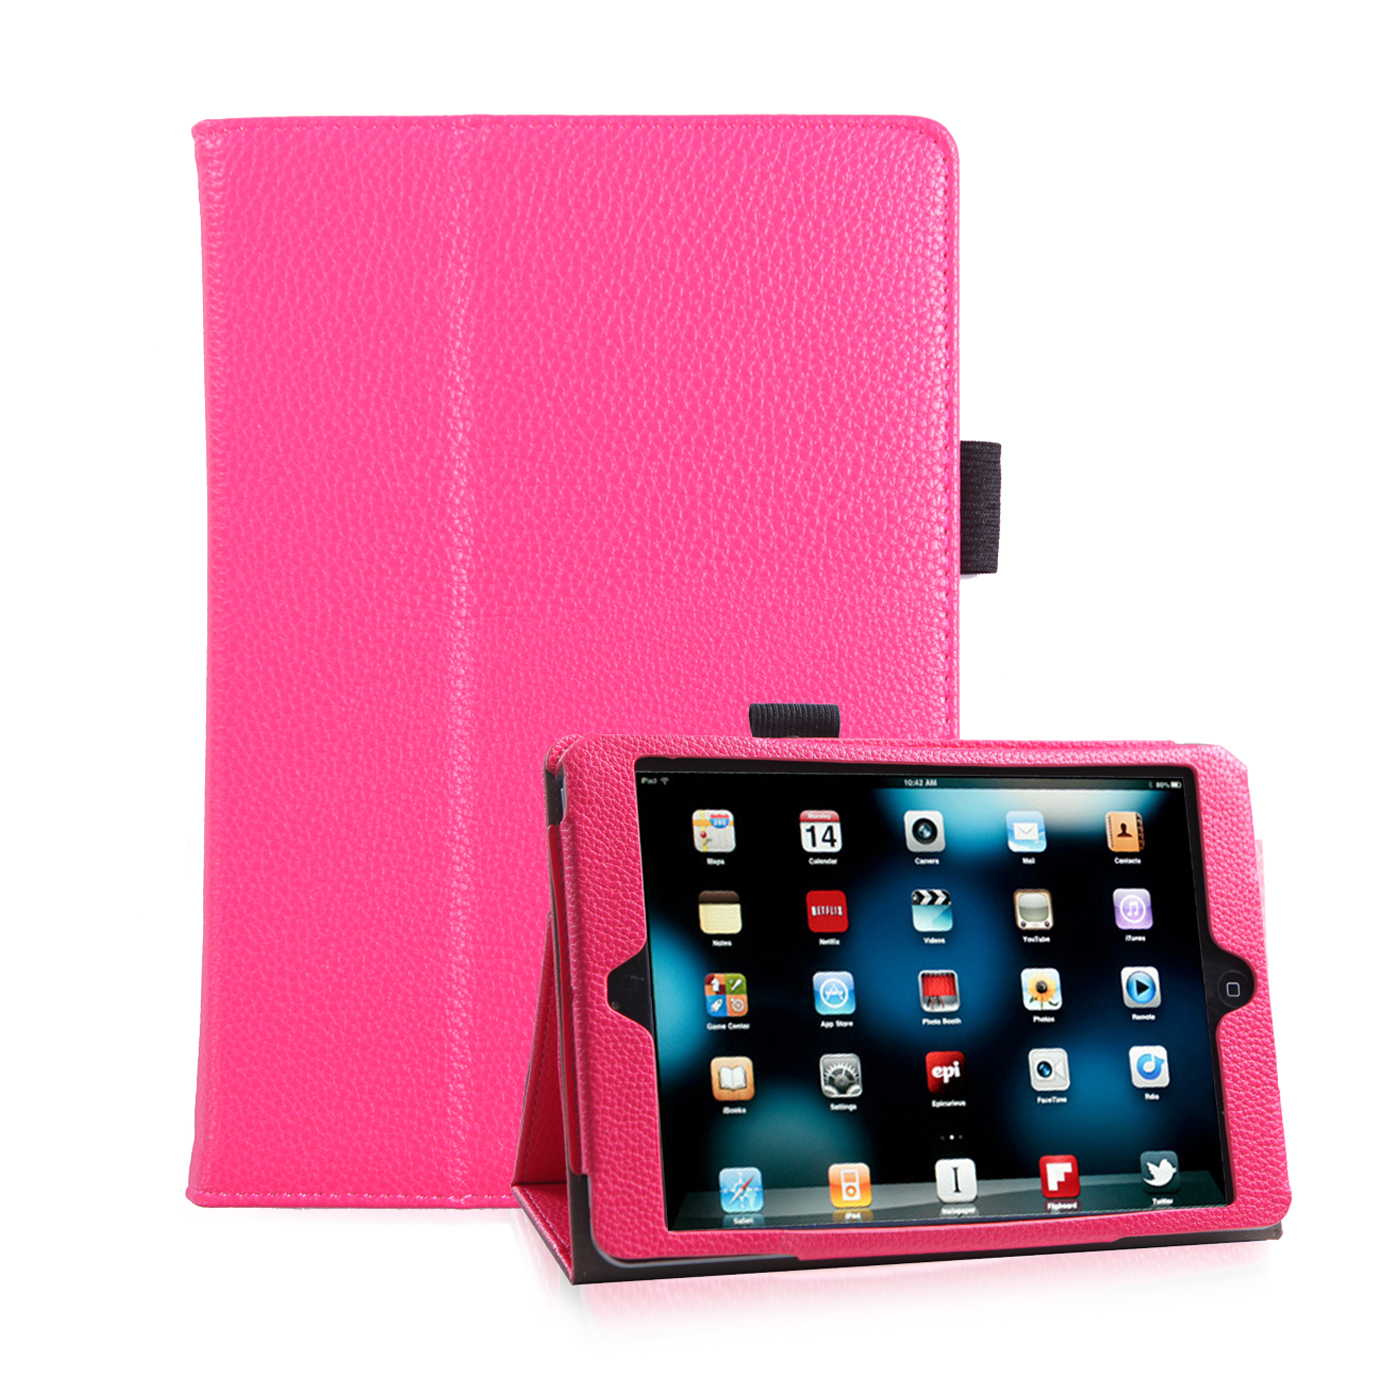 HDE iPad Mini 1 2 3 Case - Ultra Slim Fit Light Weight Folding Leather Hard Cover Stand with Auto Wake Sleep for Apple iPad Mini 1 2 3 Retina Display + 3 Pack Screen Protector (Pink)